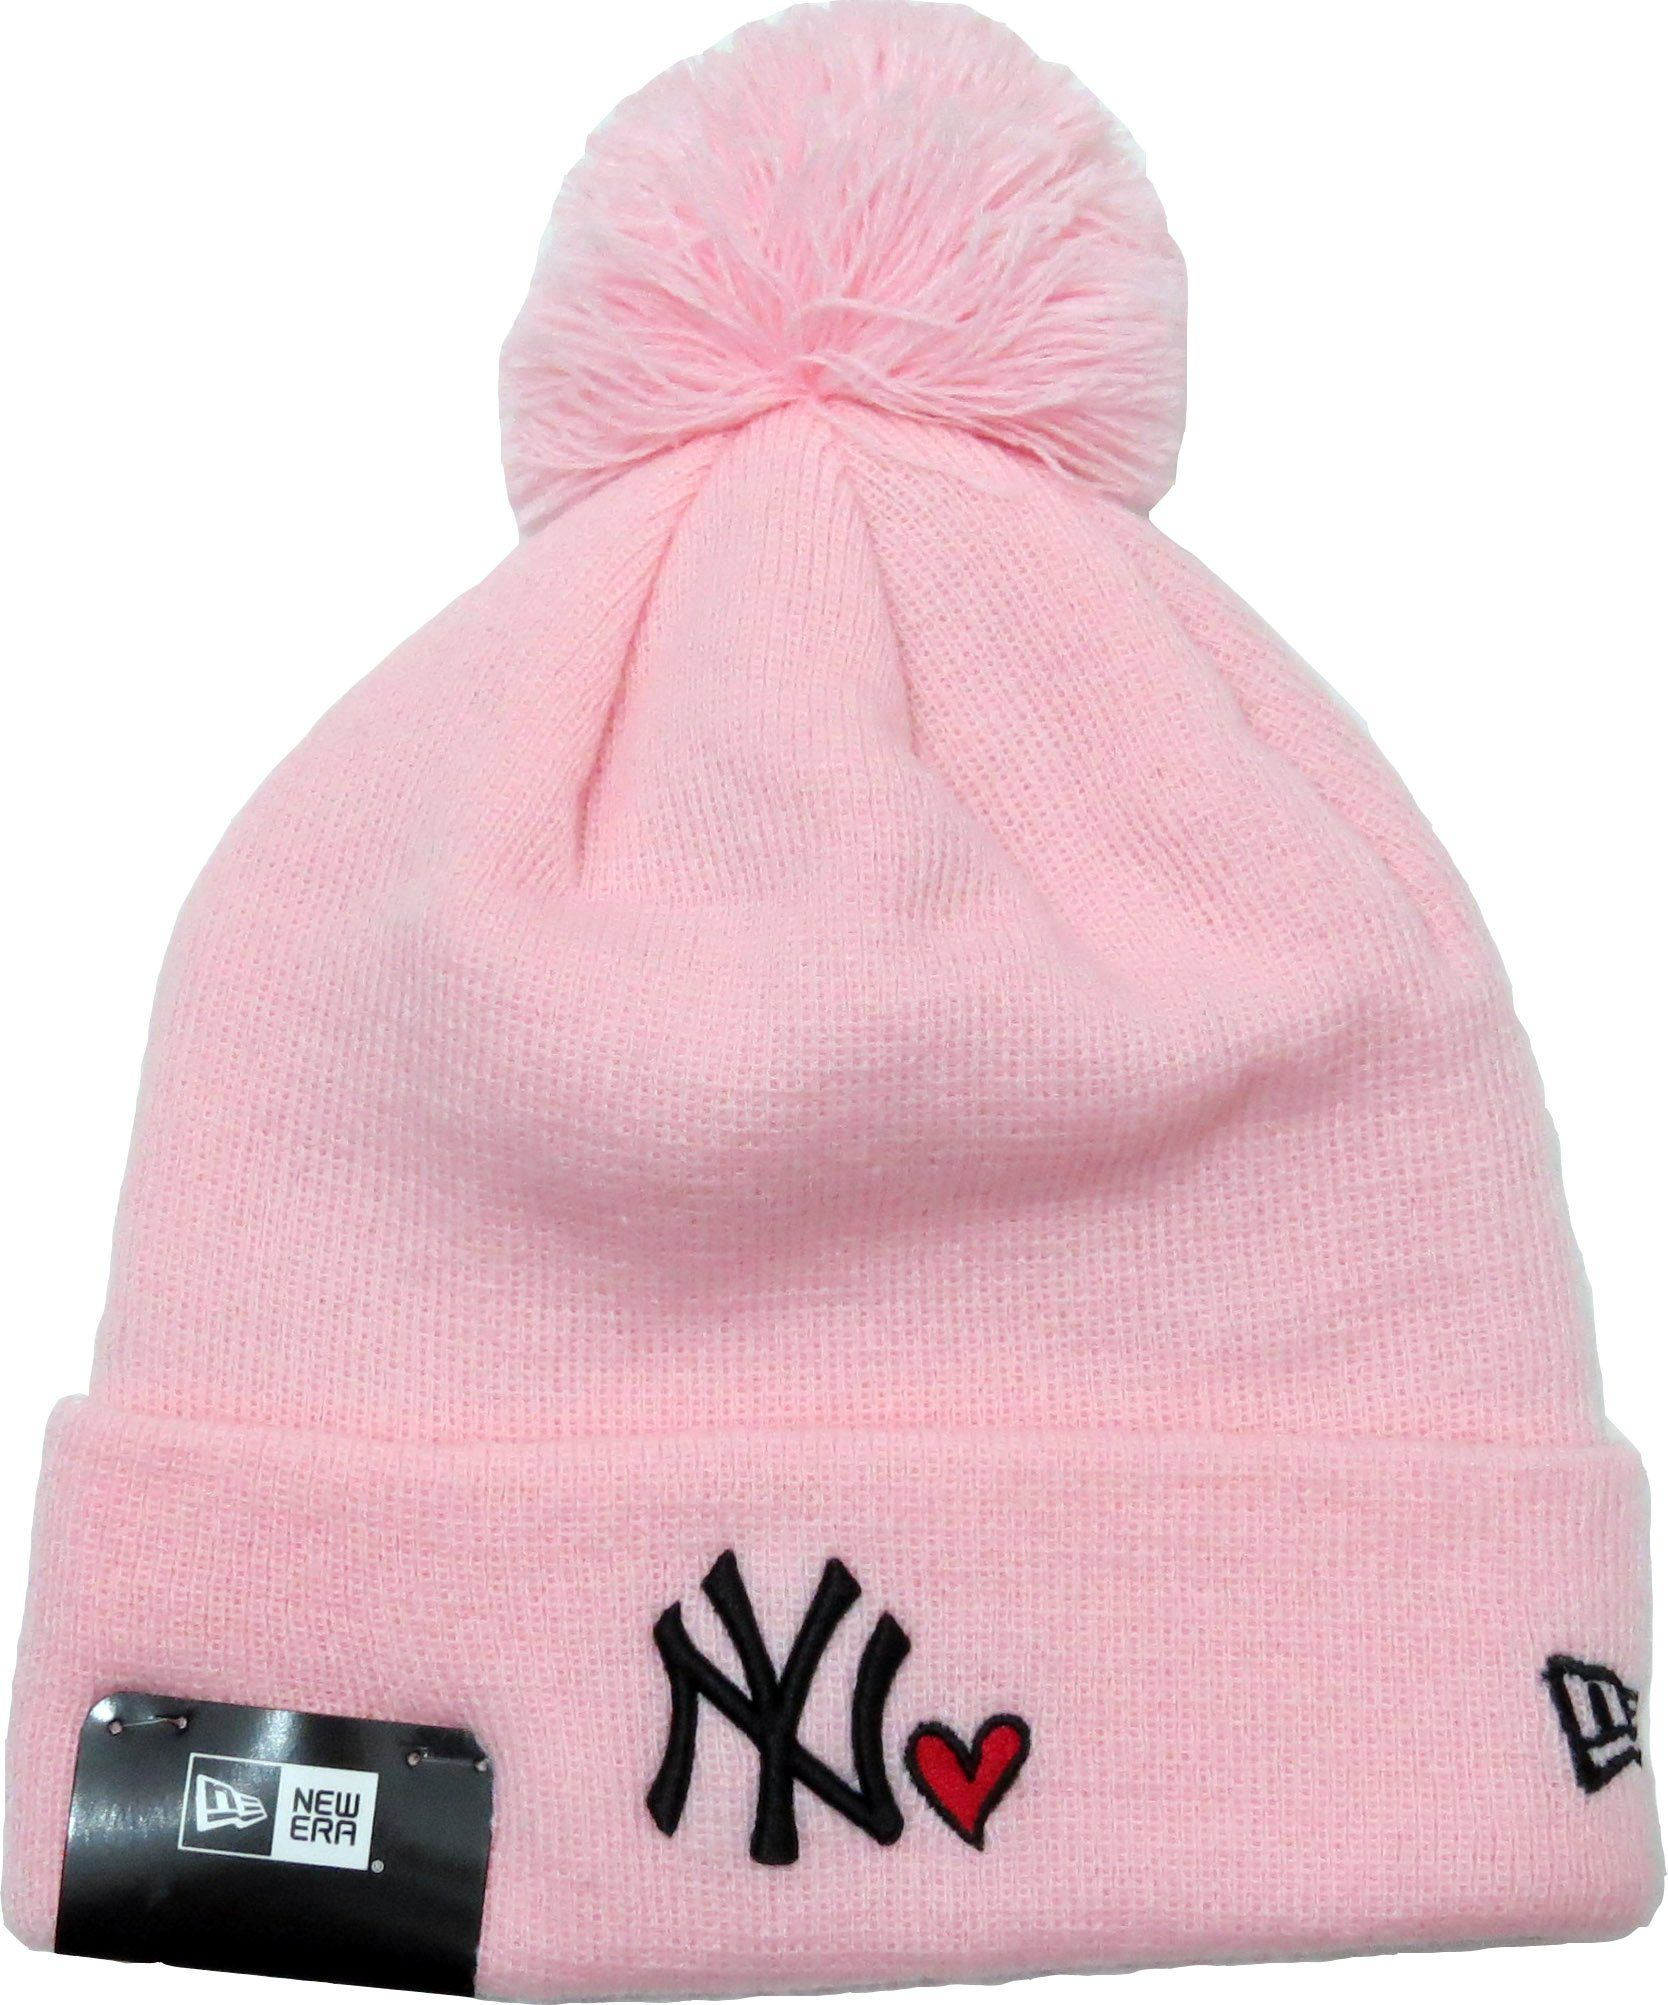 342e0efba7c NY Yankees New Era Heart Knit Pink Bobble Hat – lovemycap